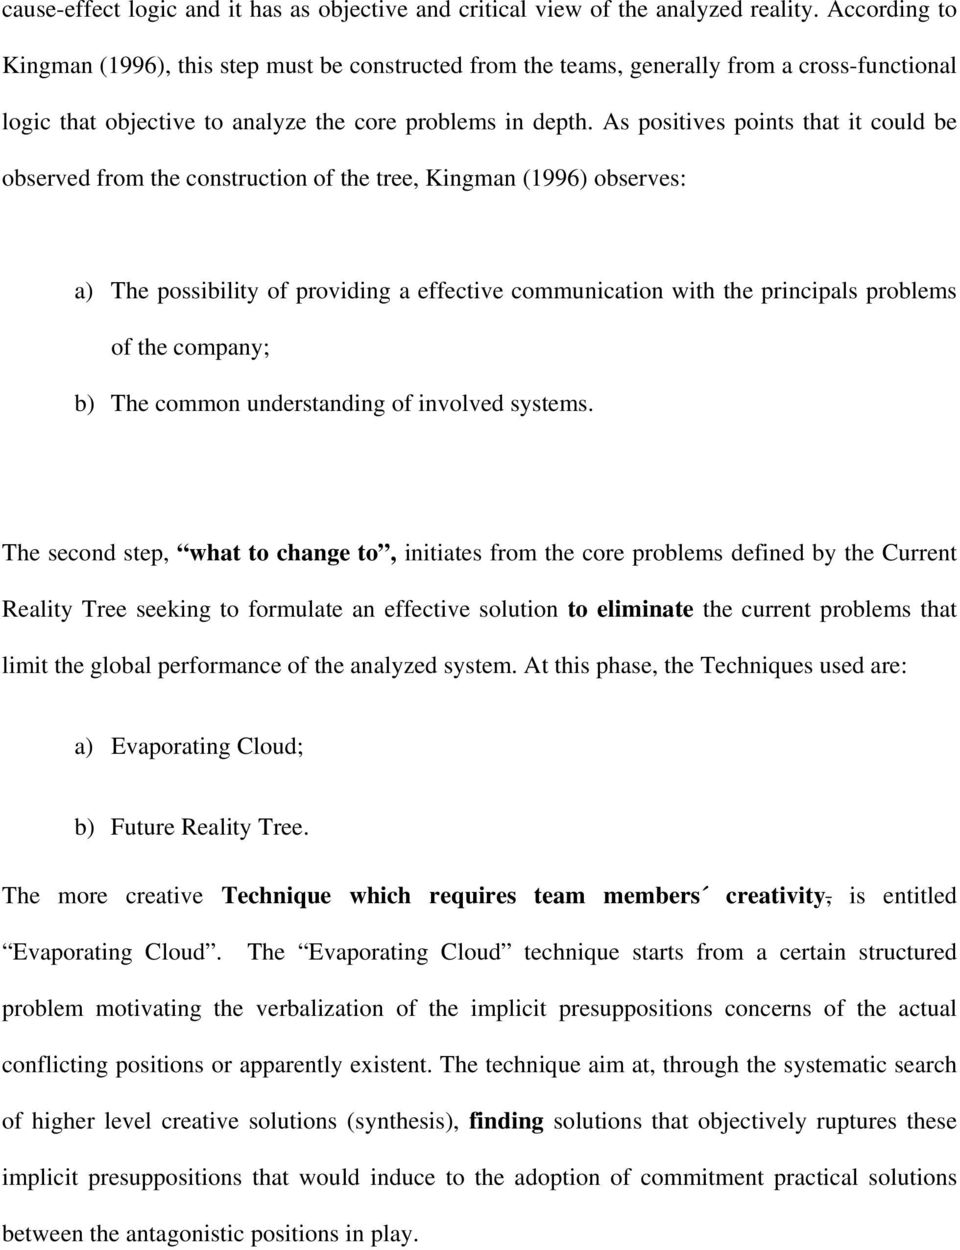 As positives points that it could be observed from the construction of the tree, Kingman (1996) observes: a) The possibility of providing a effective communication with the principals problems of the